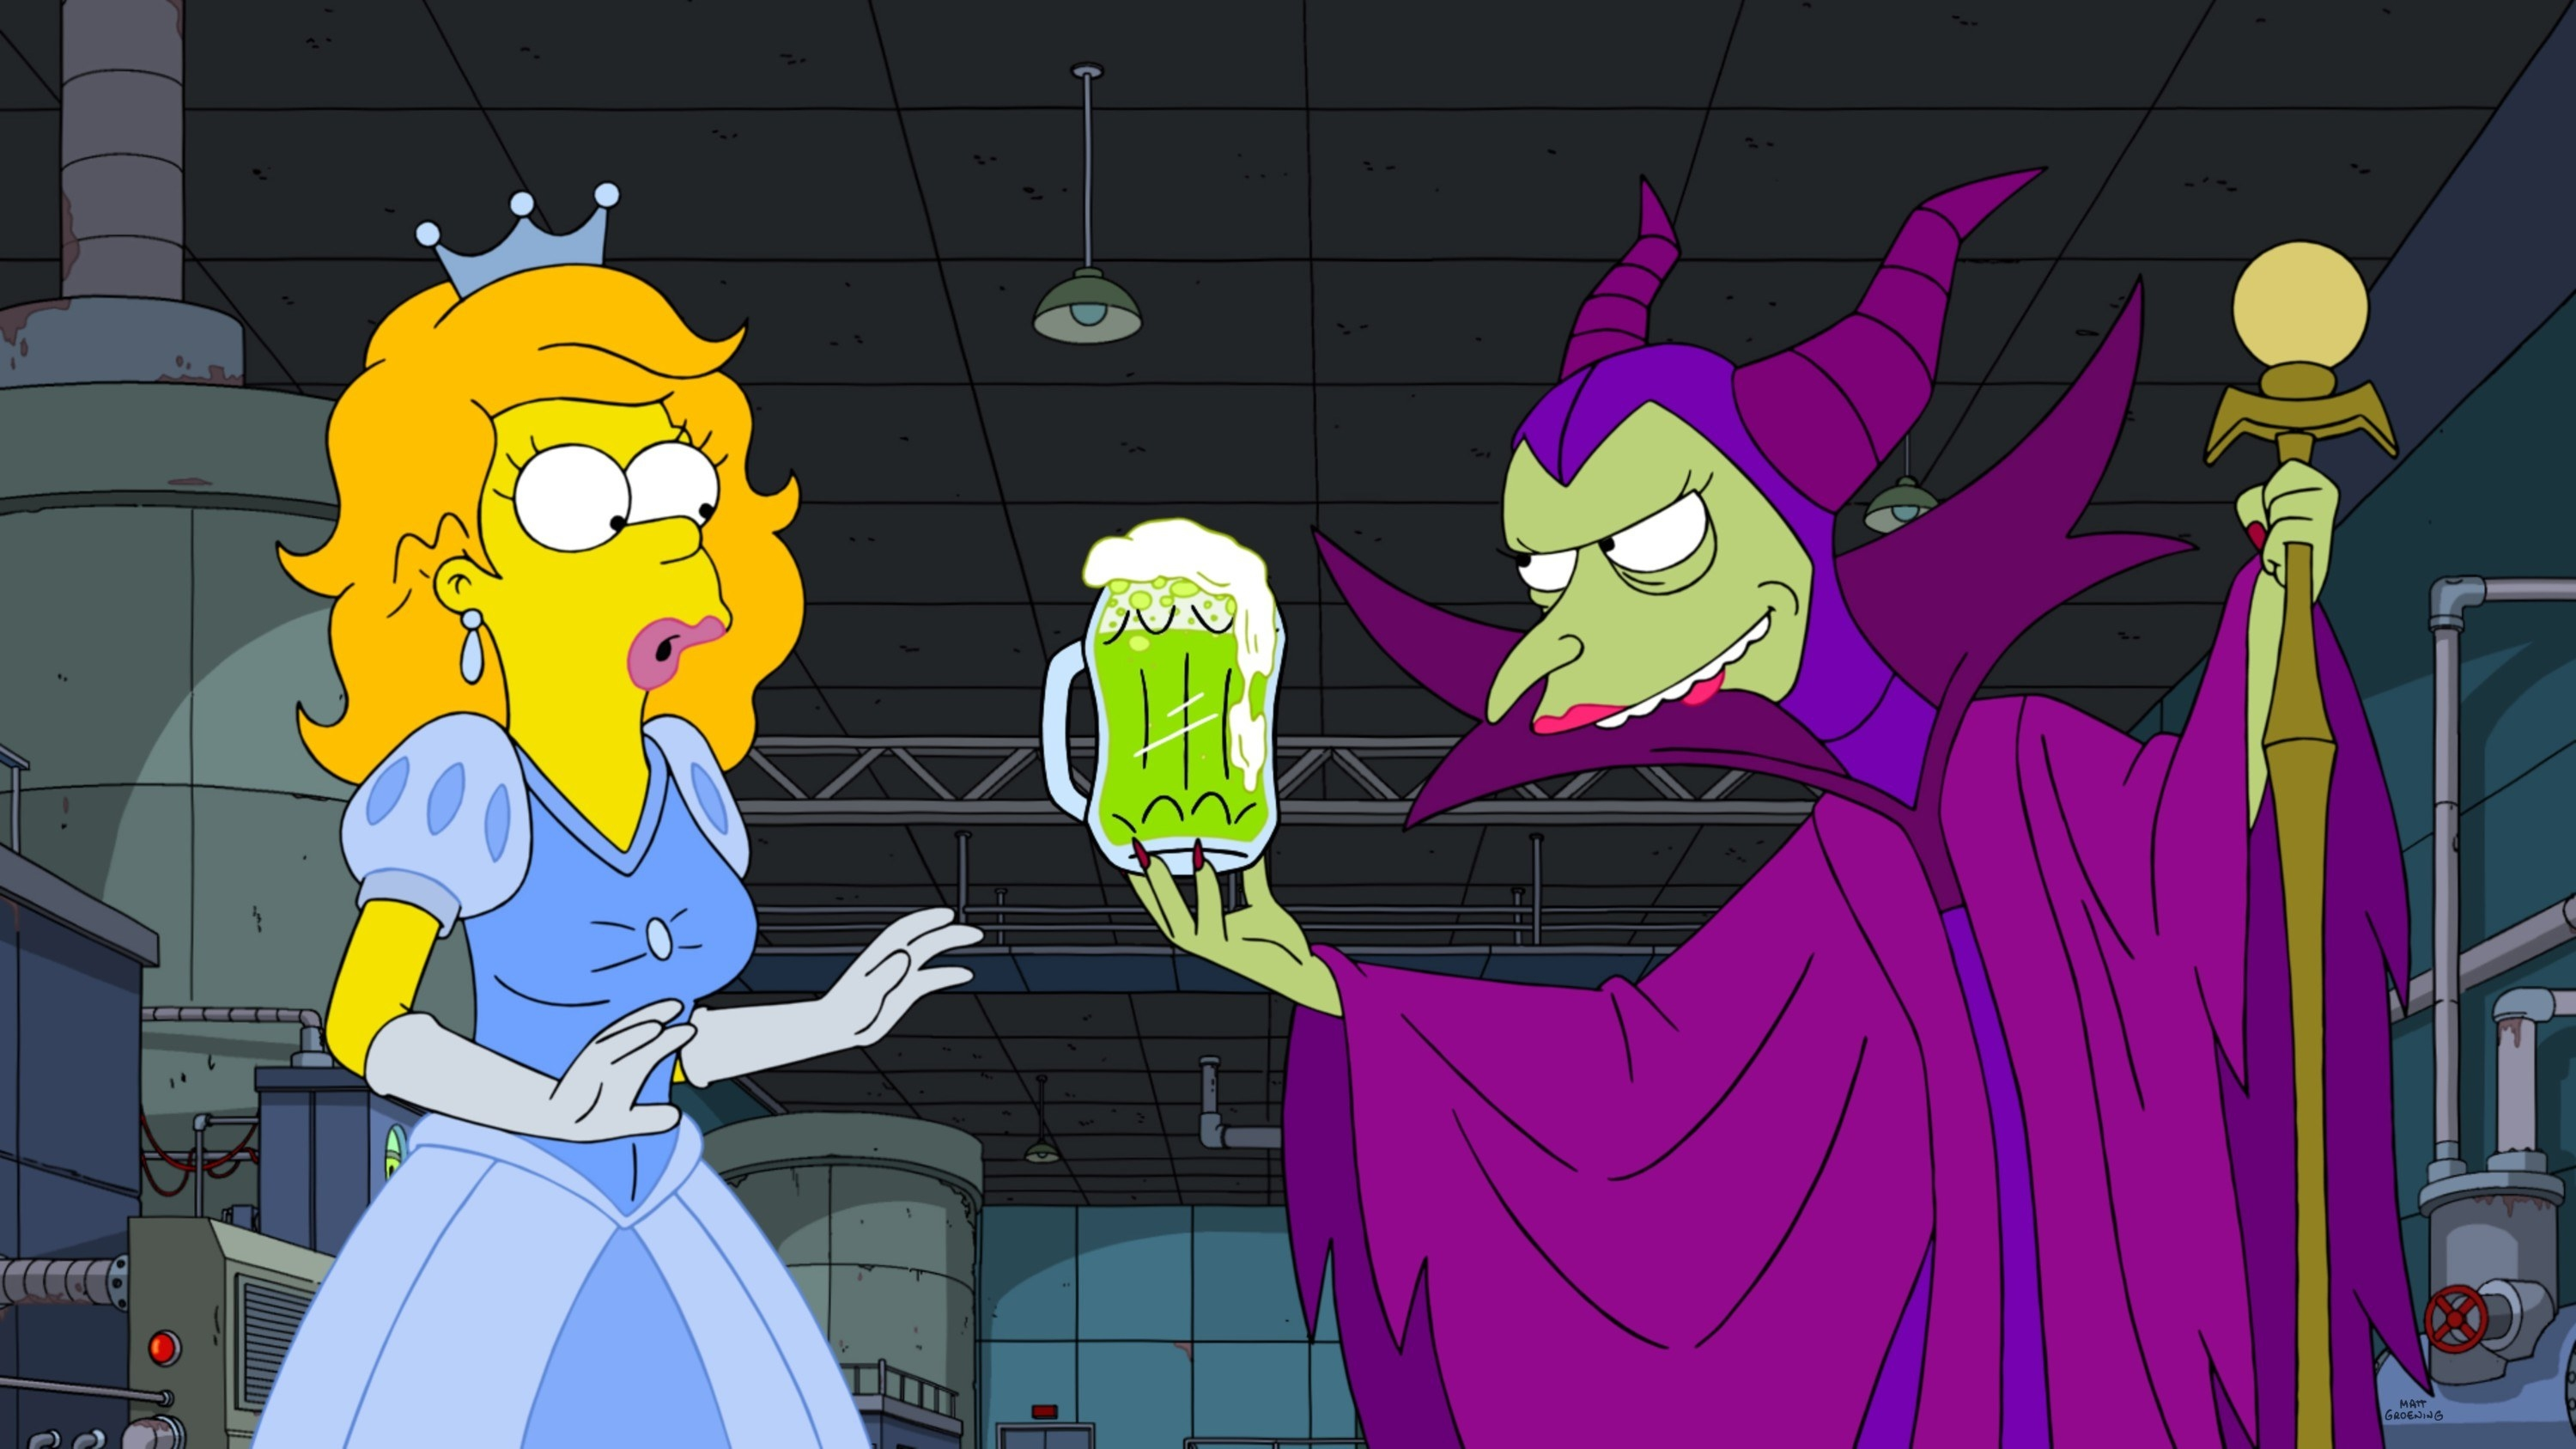 Homer as Cinderella and Mr. Burns as Maleficent